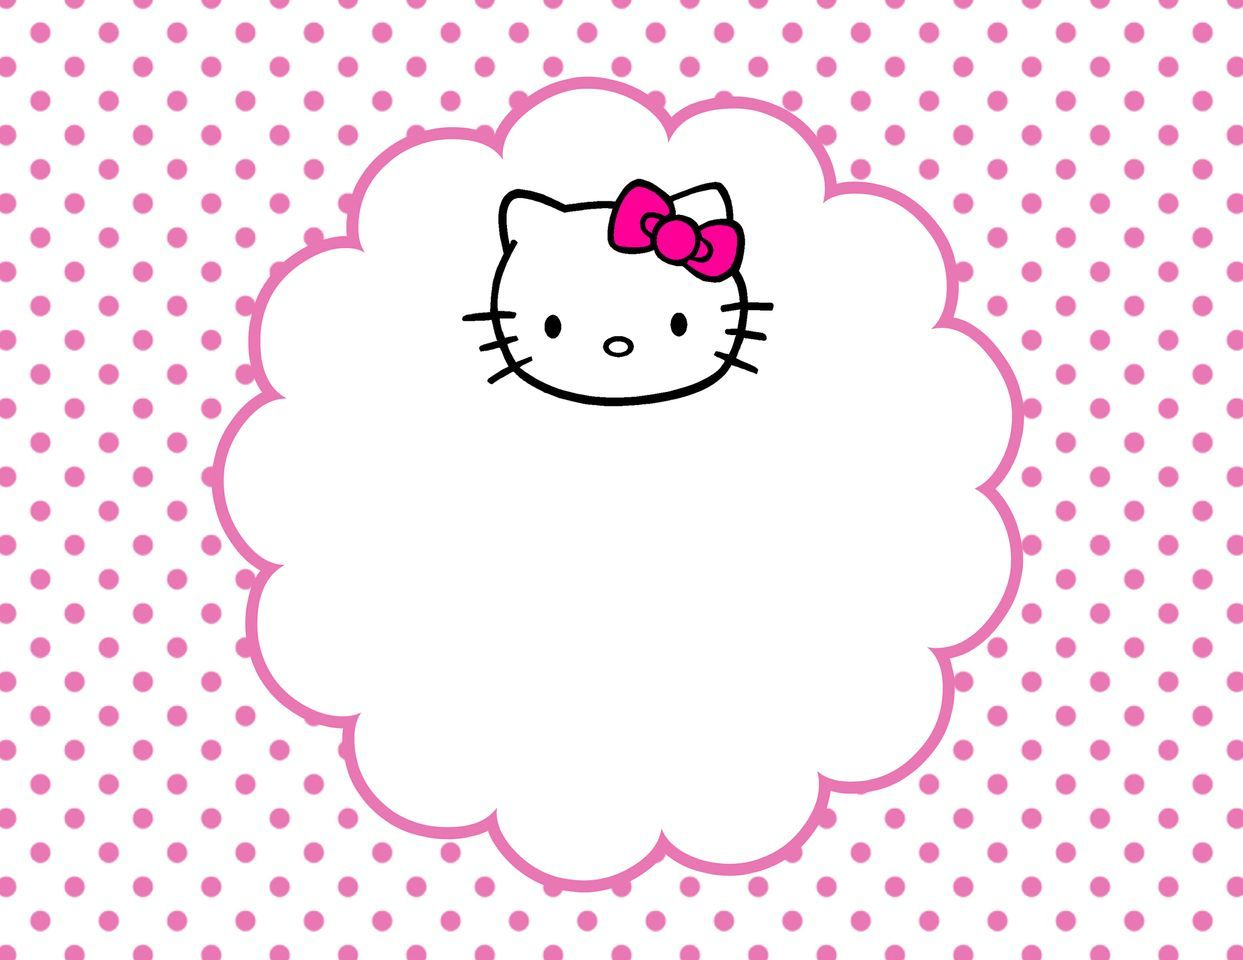 picture relating to Kitty Printable titled Hello there kitty printable Bash - Good day Kitty Hi there kitty